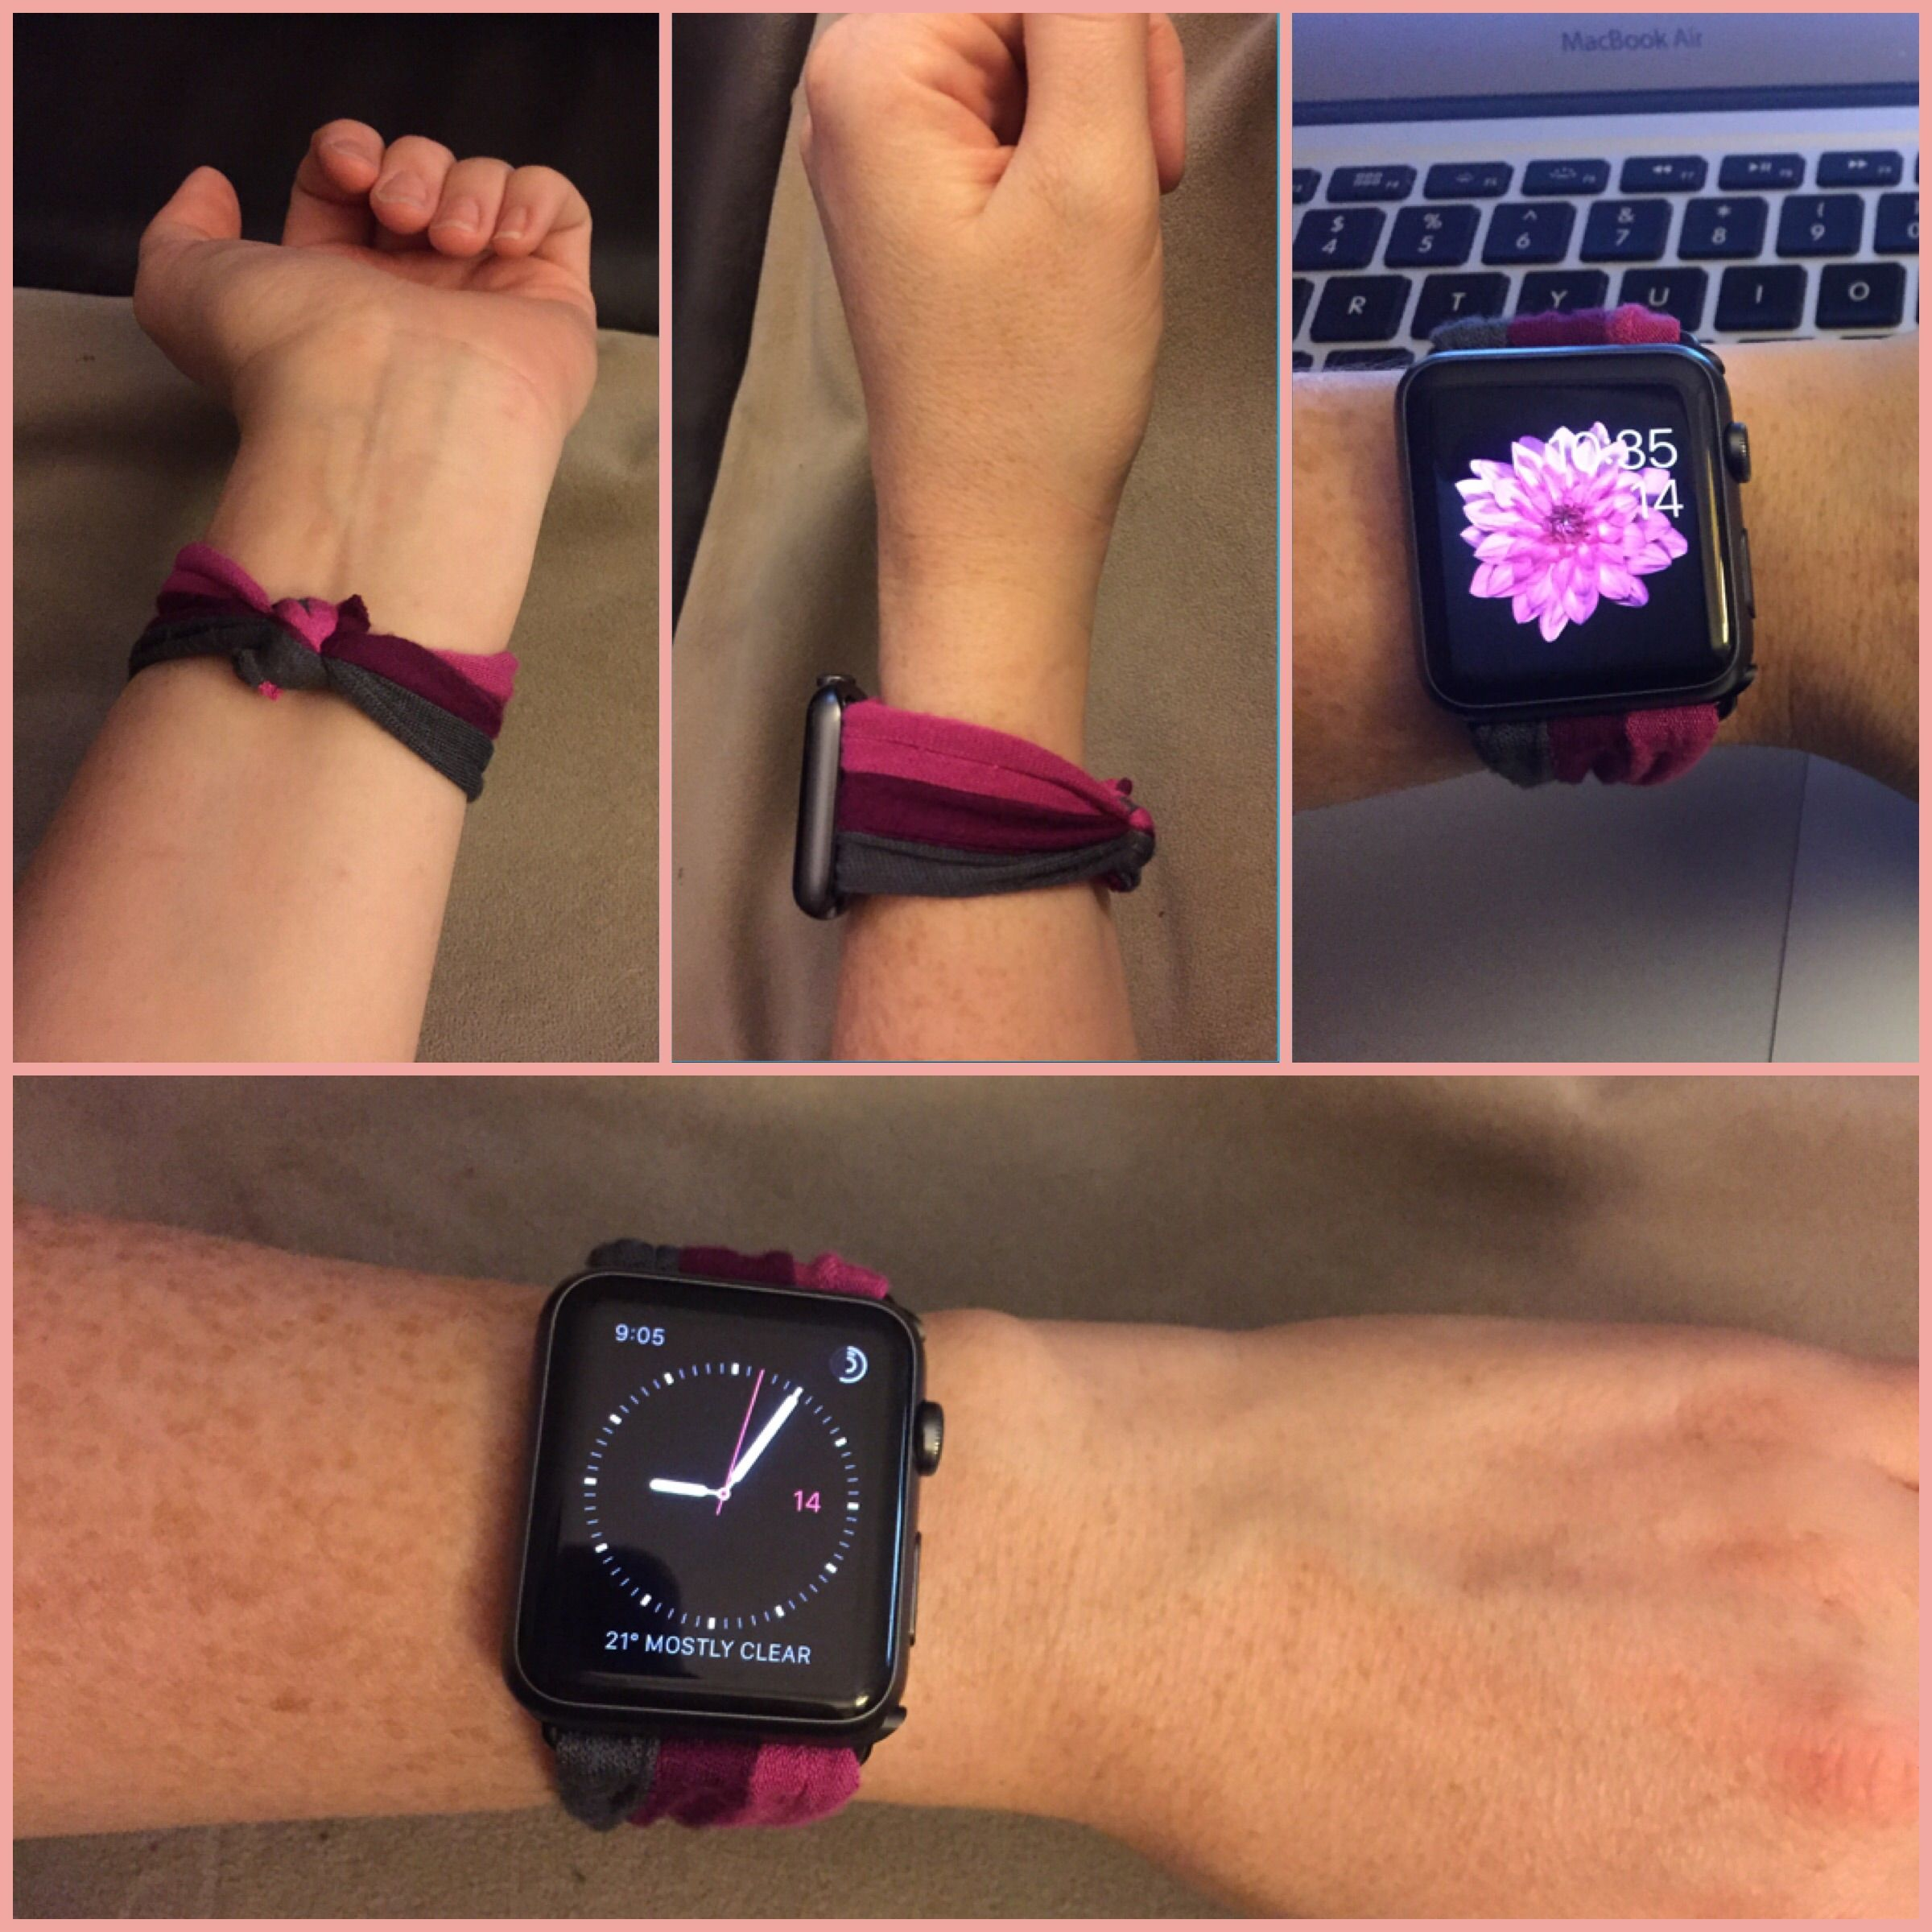 Apple Watch Band Holder Diy Apple Watch Accessories Diy Watch